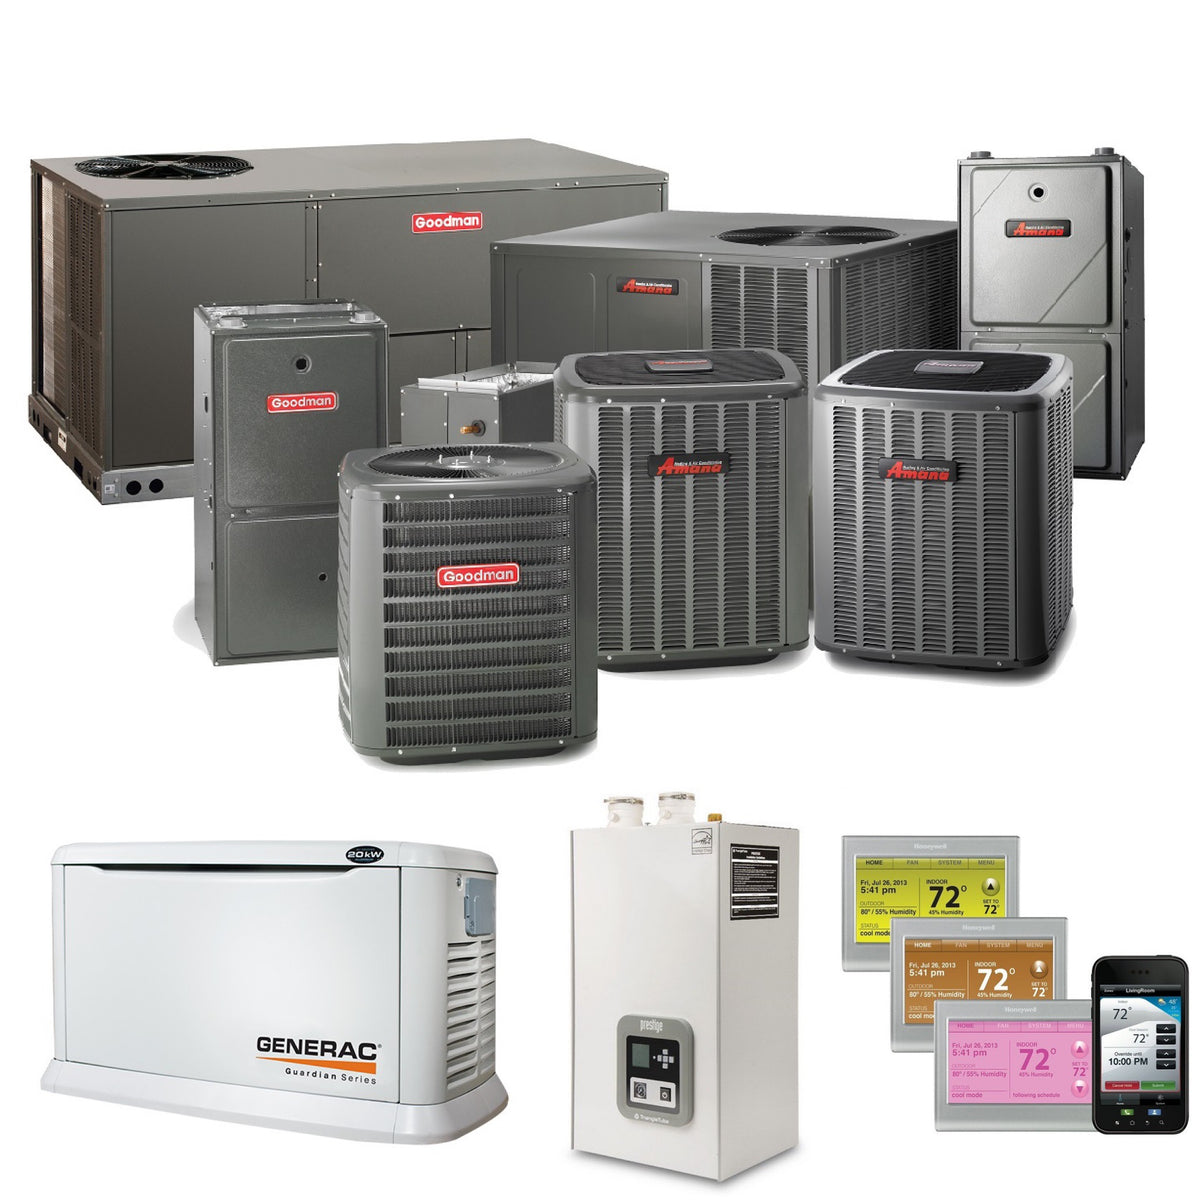 Heating | Plumbing | Generators | Air Conditioning | Boilers | Mini Split Systems | Petoskey | Harbor Springs | Alanson | Boyne City | Charlevoix | Mackinaw City | Indian River | Northern Michigan | |